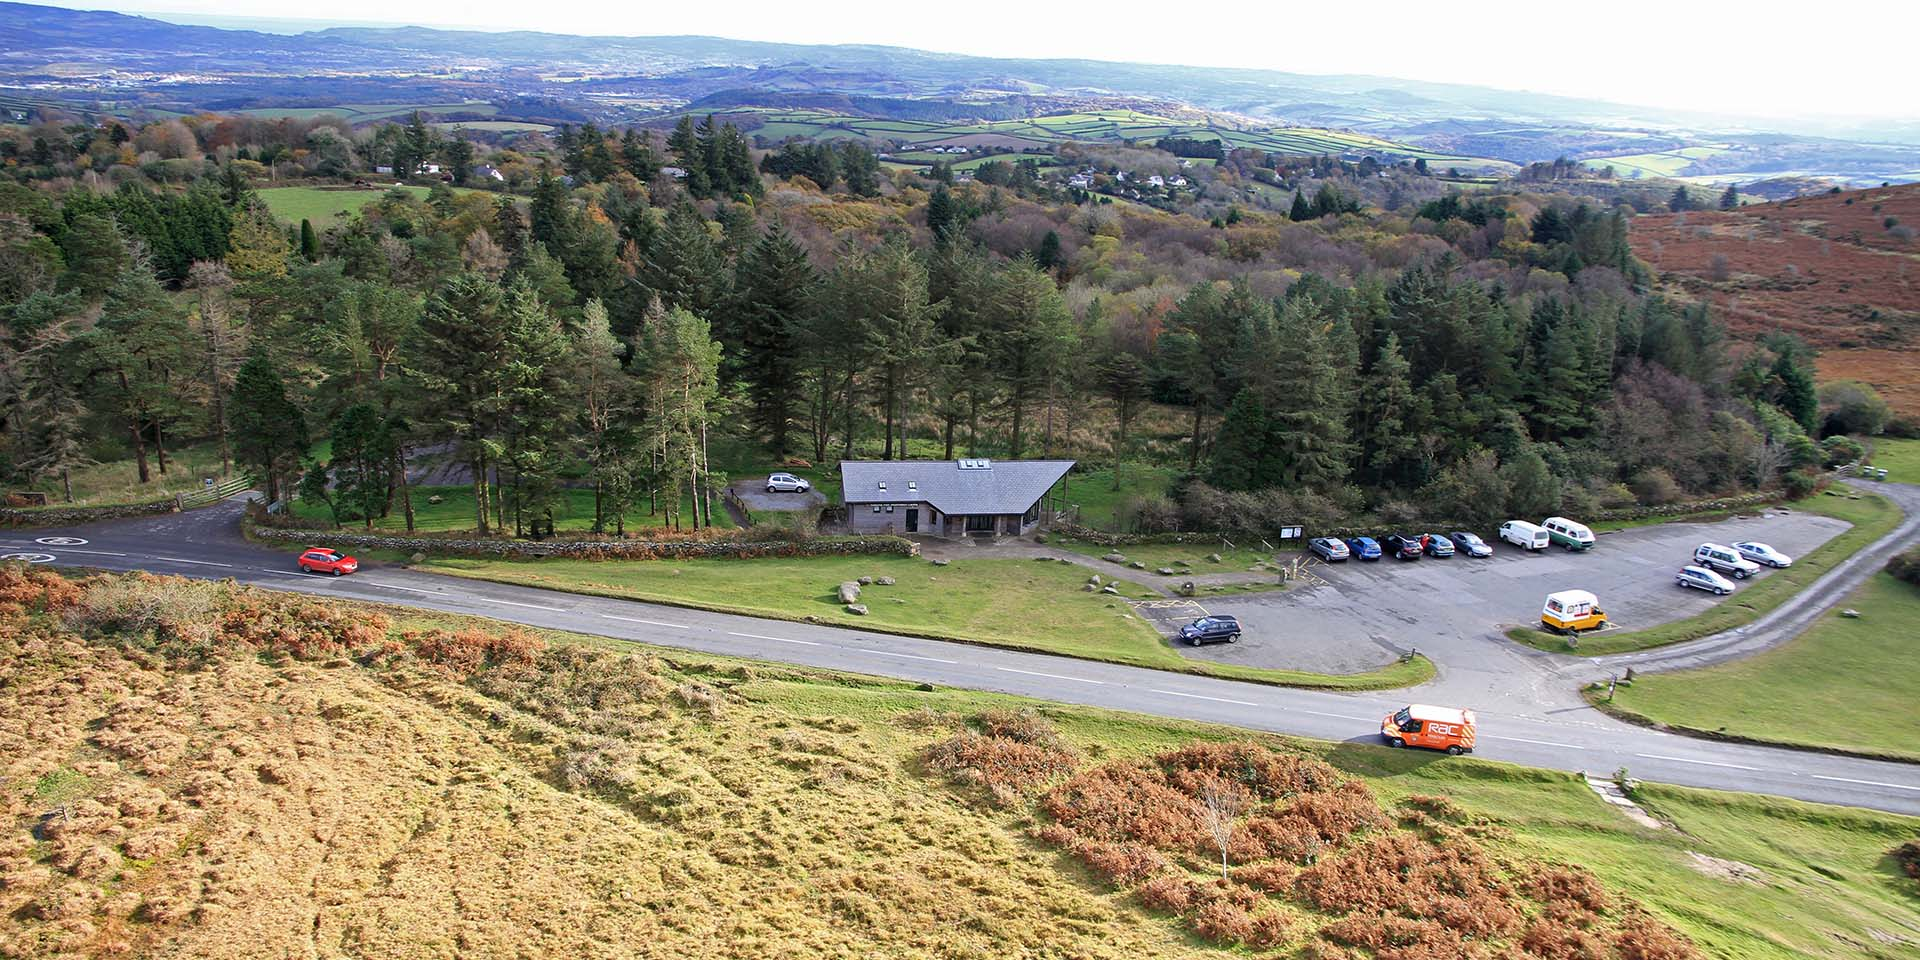 Aerial view of Haytor Visitor Centre